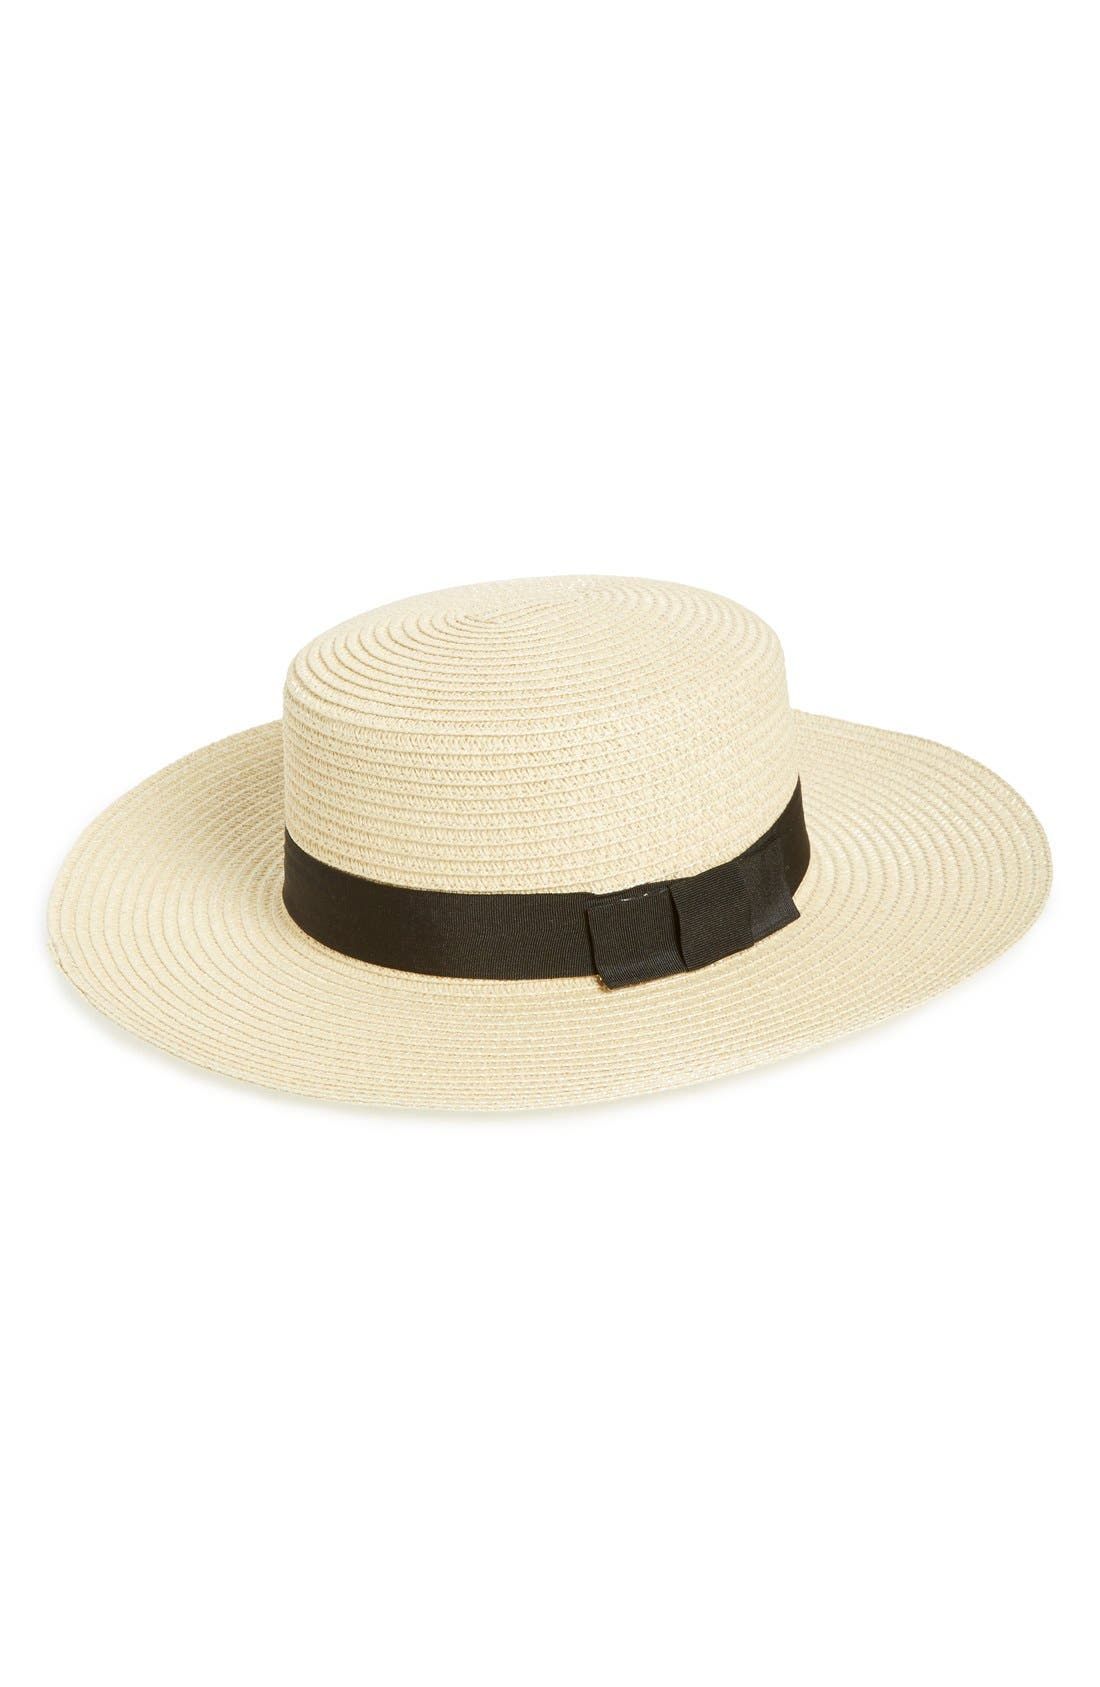 BP., Straw Boater Hat, Main thumbnail 1, color, 250